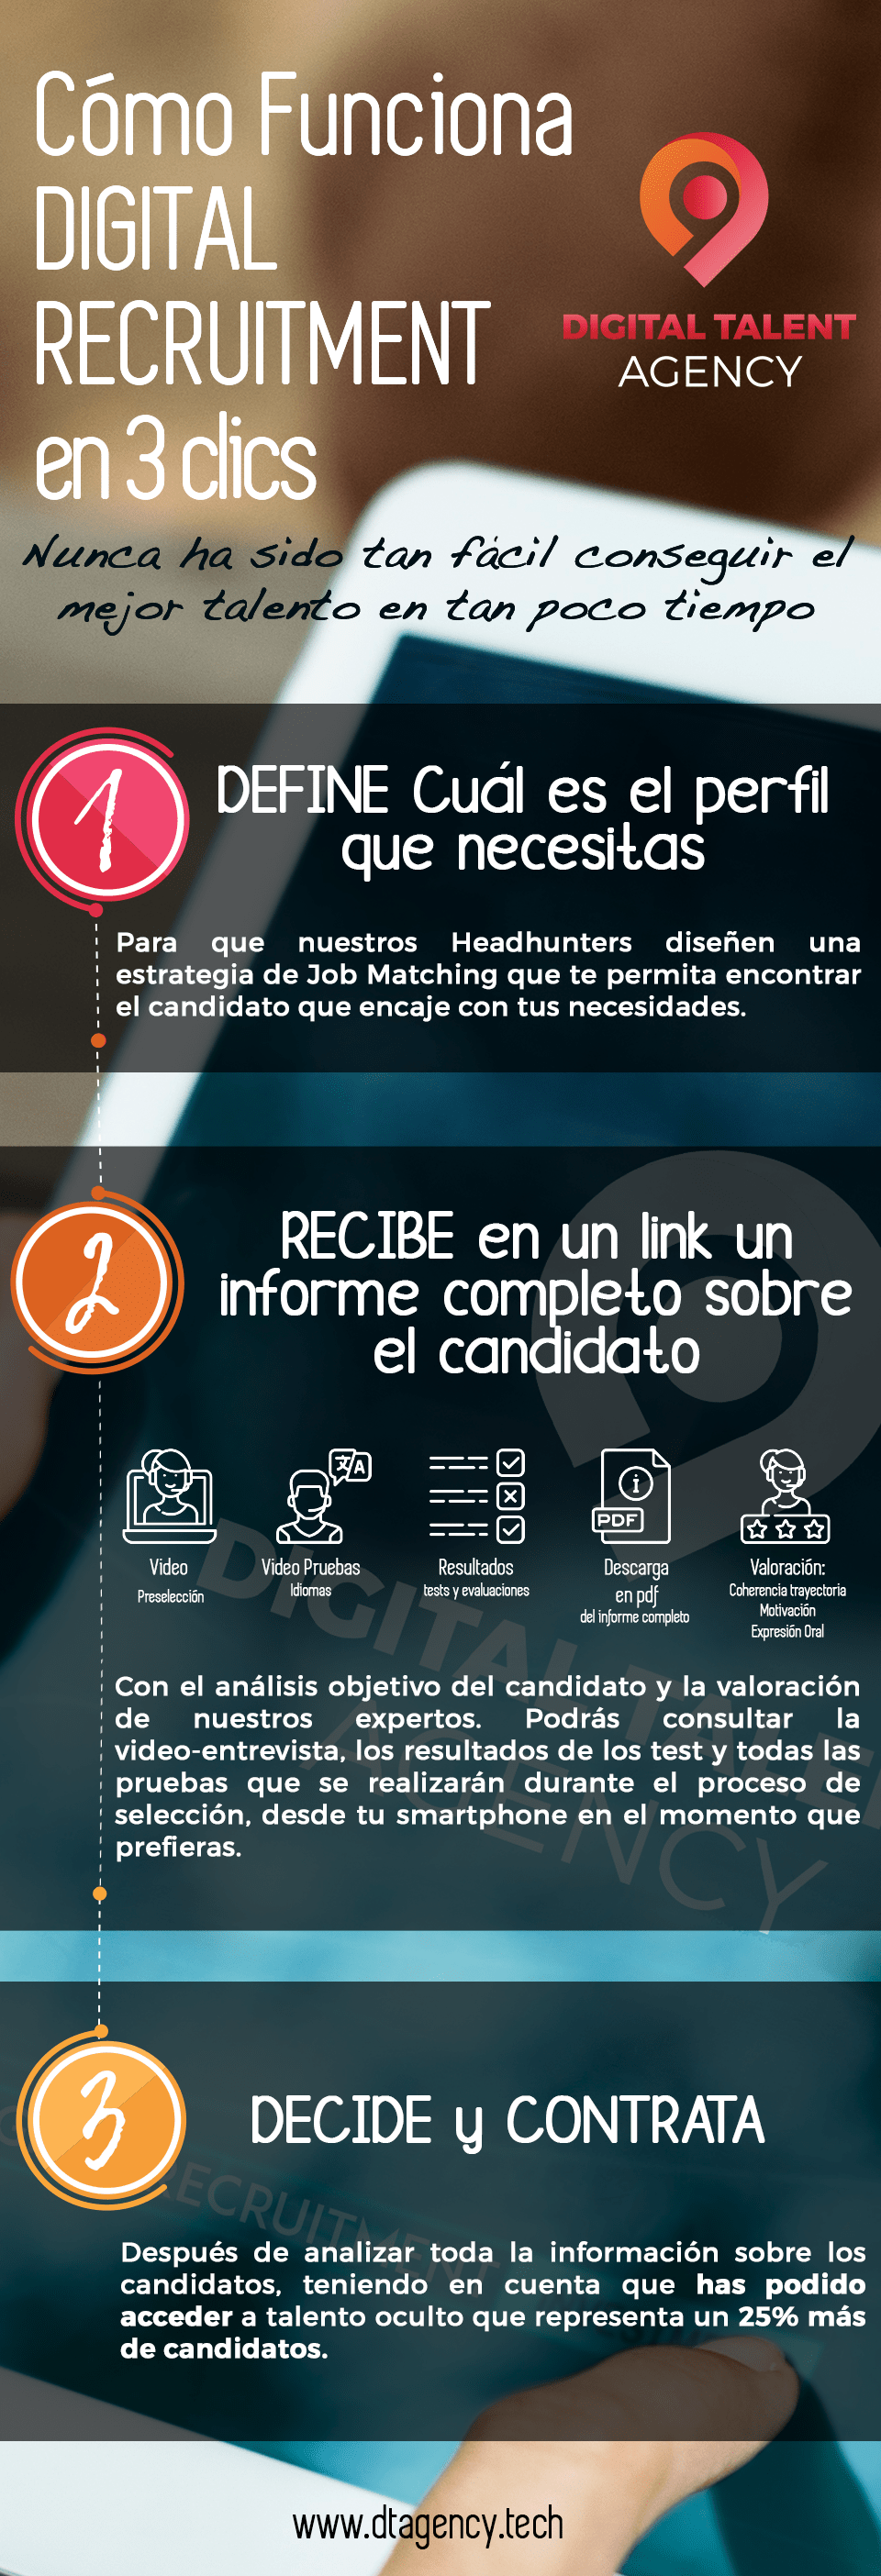 Digital recruitment para empresas